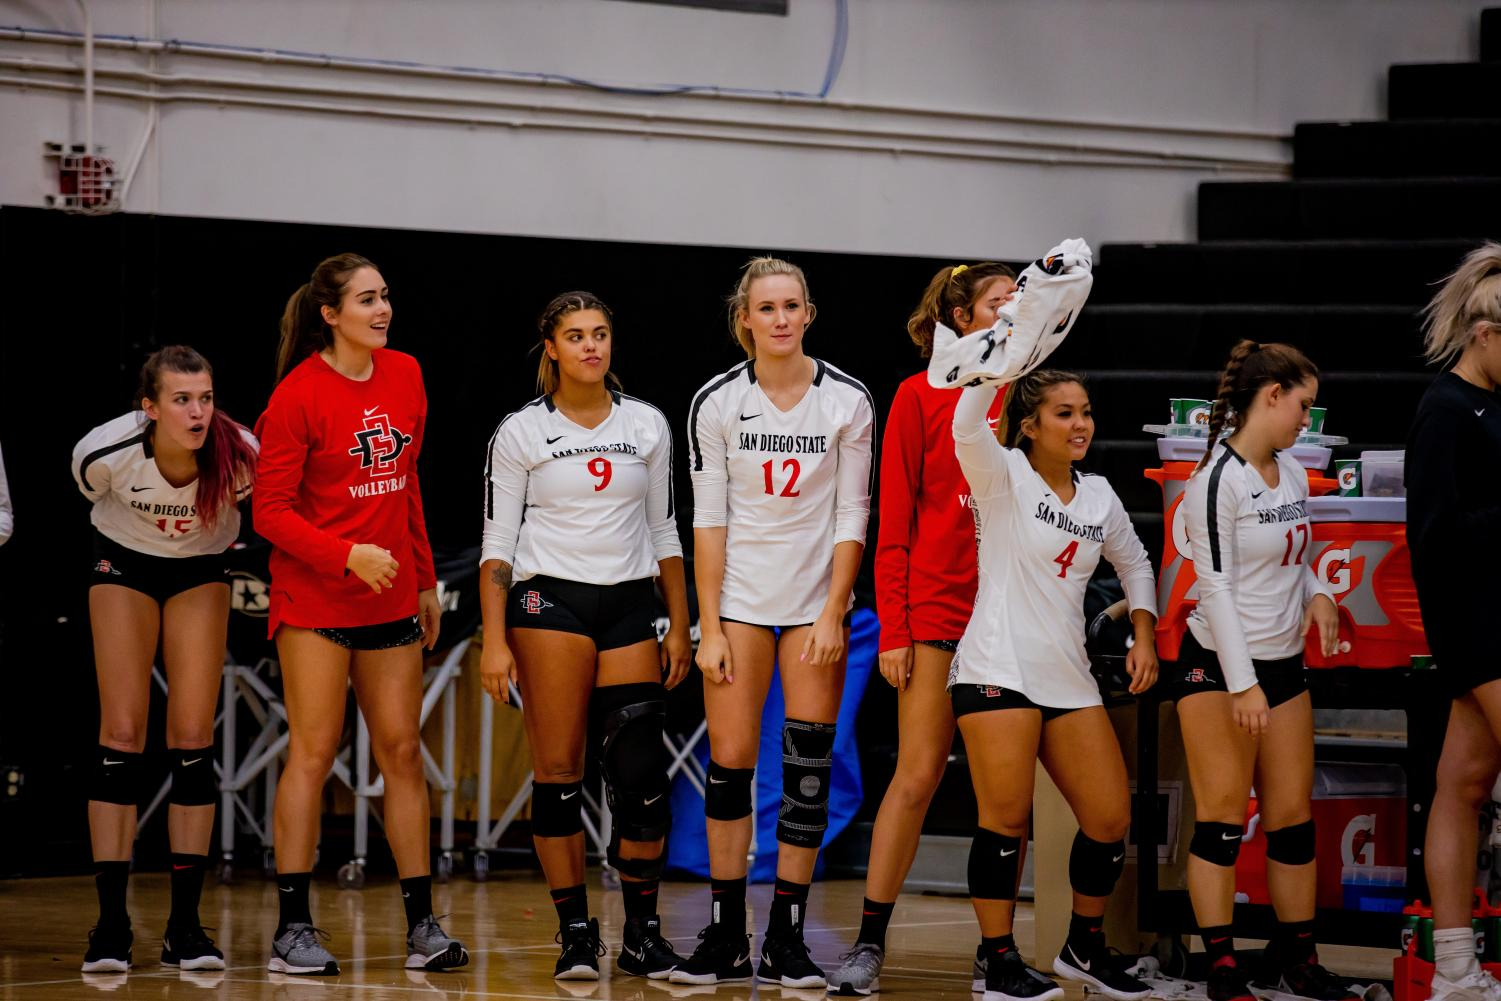 The San Diego State volleyball team's bench looks onto the court during the Aztecs' 3-1 loss to UNLV on Oct. 3 at Peterson Gym.